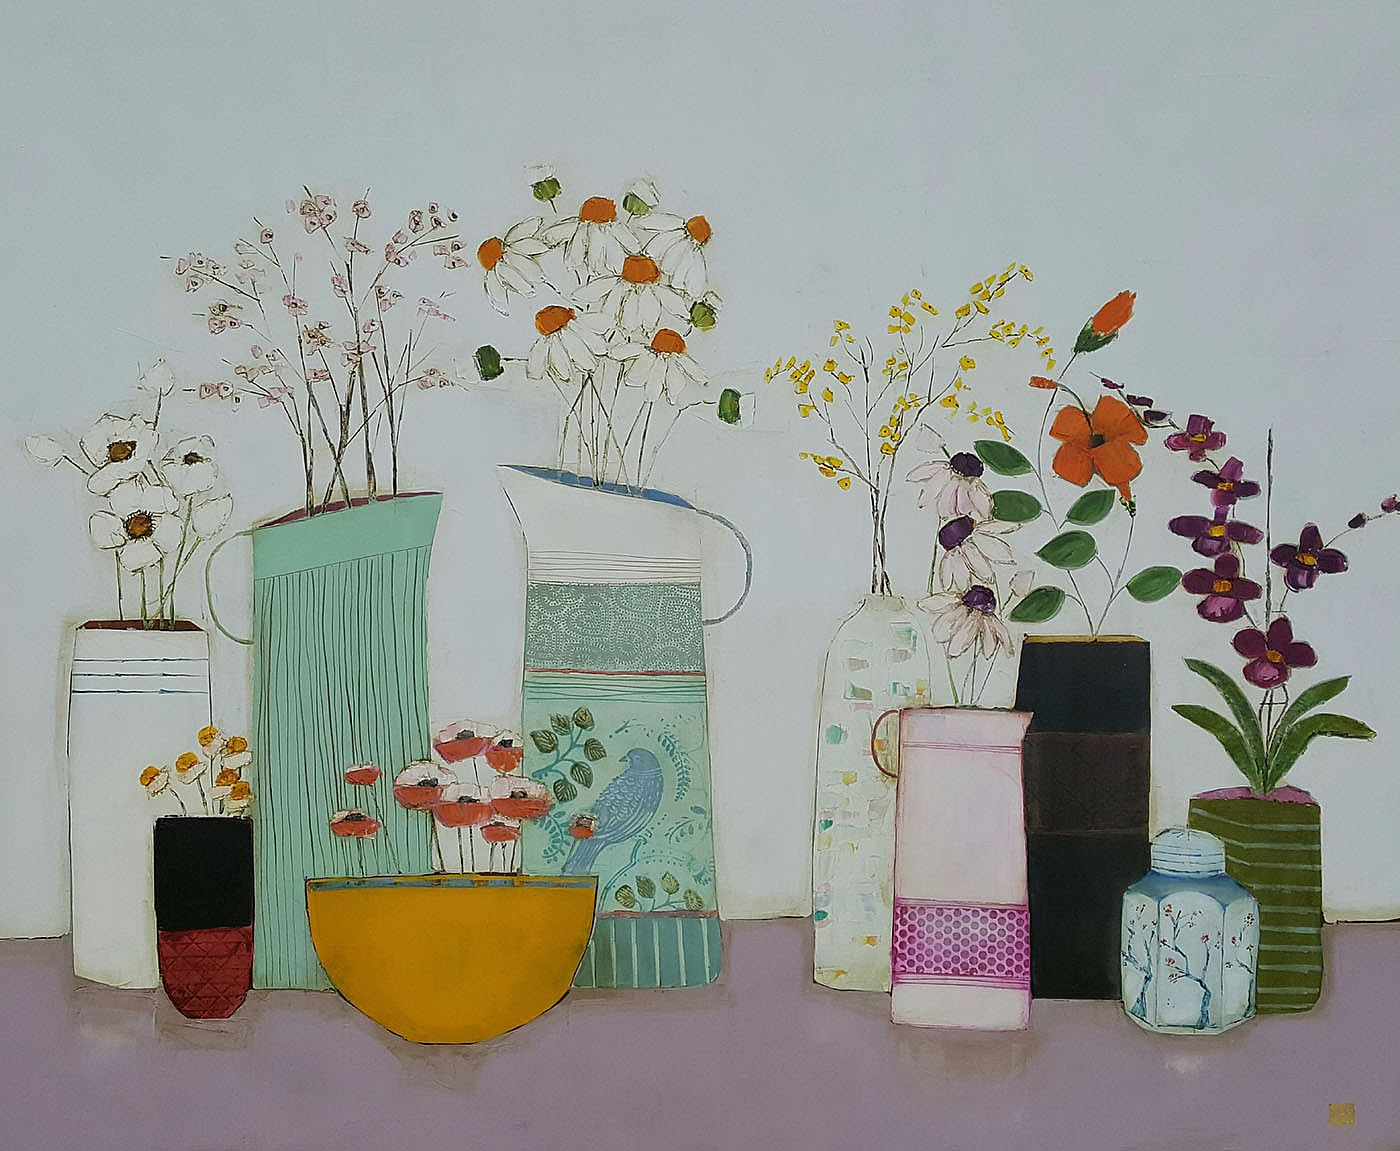 Eithne  Roberts - Mustard bowl and flower jugs